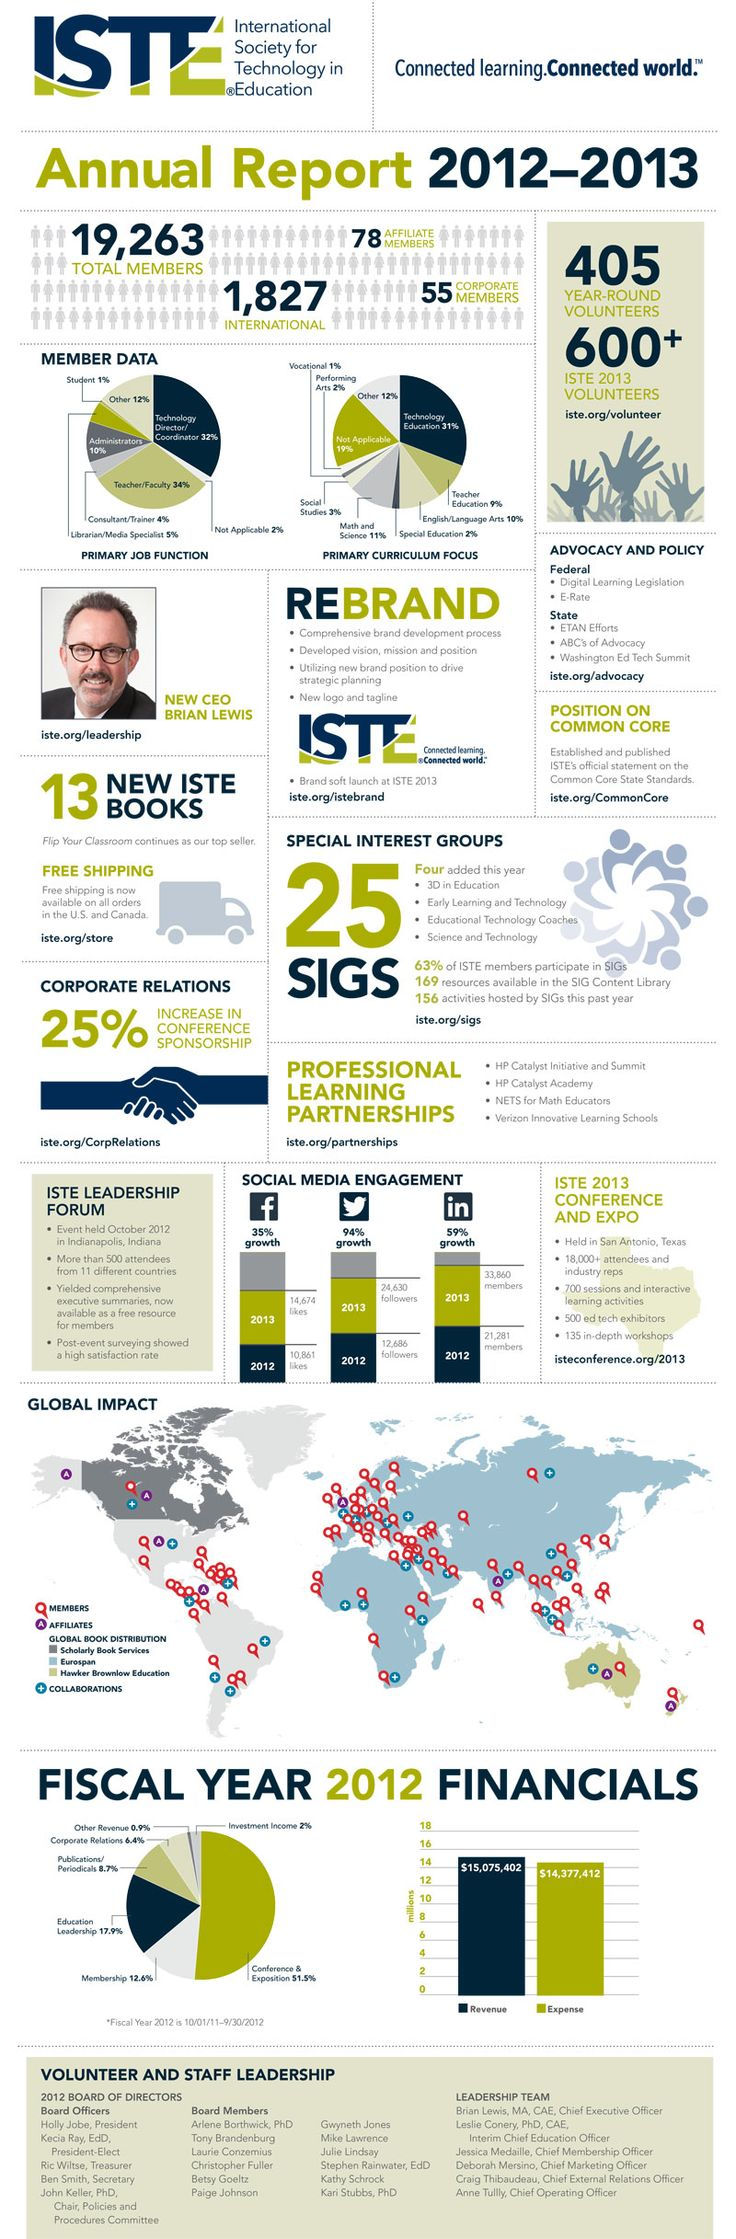 ISTE 2012-2013 Annual Report Infographic